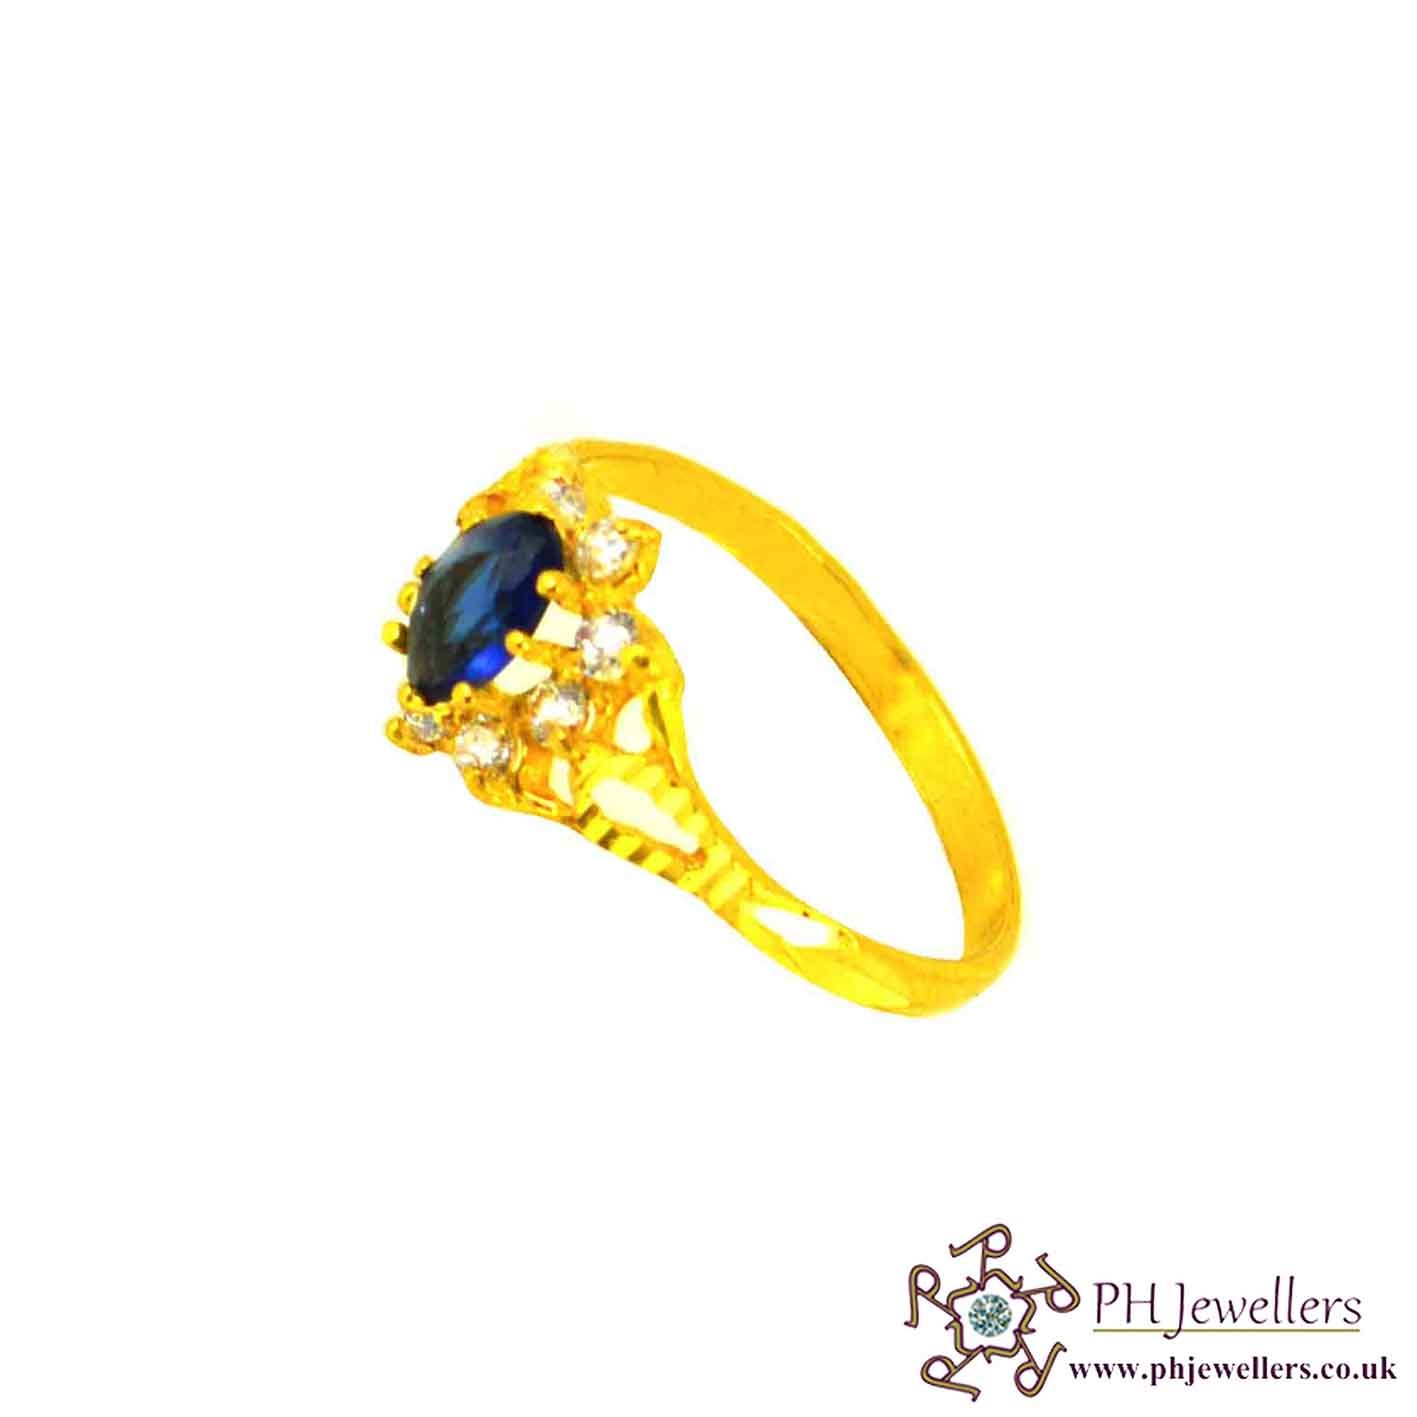 22ct 916 Hallmark Yellow Gold Cluster Oval Blue Sapphire Size M,M1/2 Ring CZ SR21